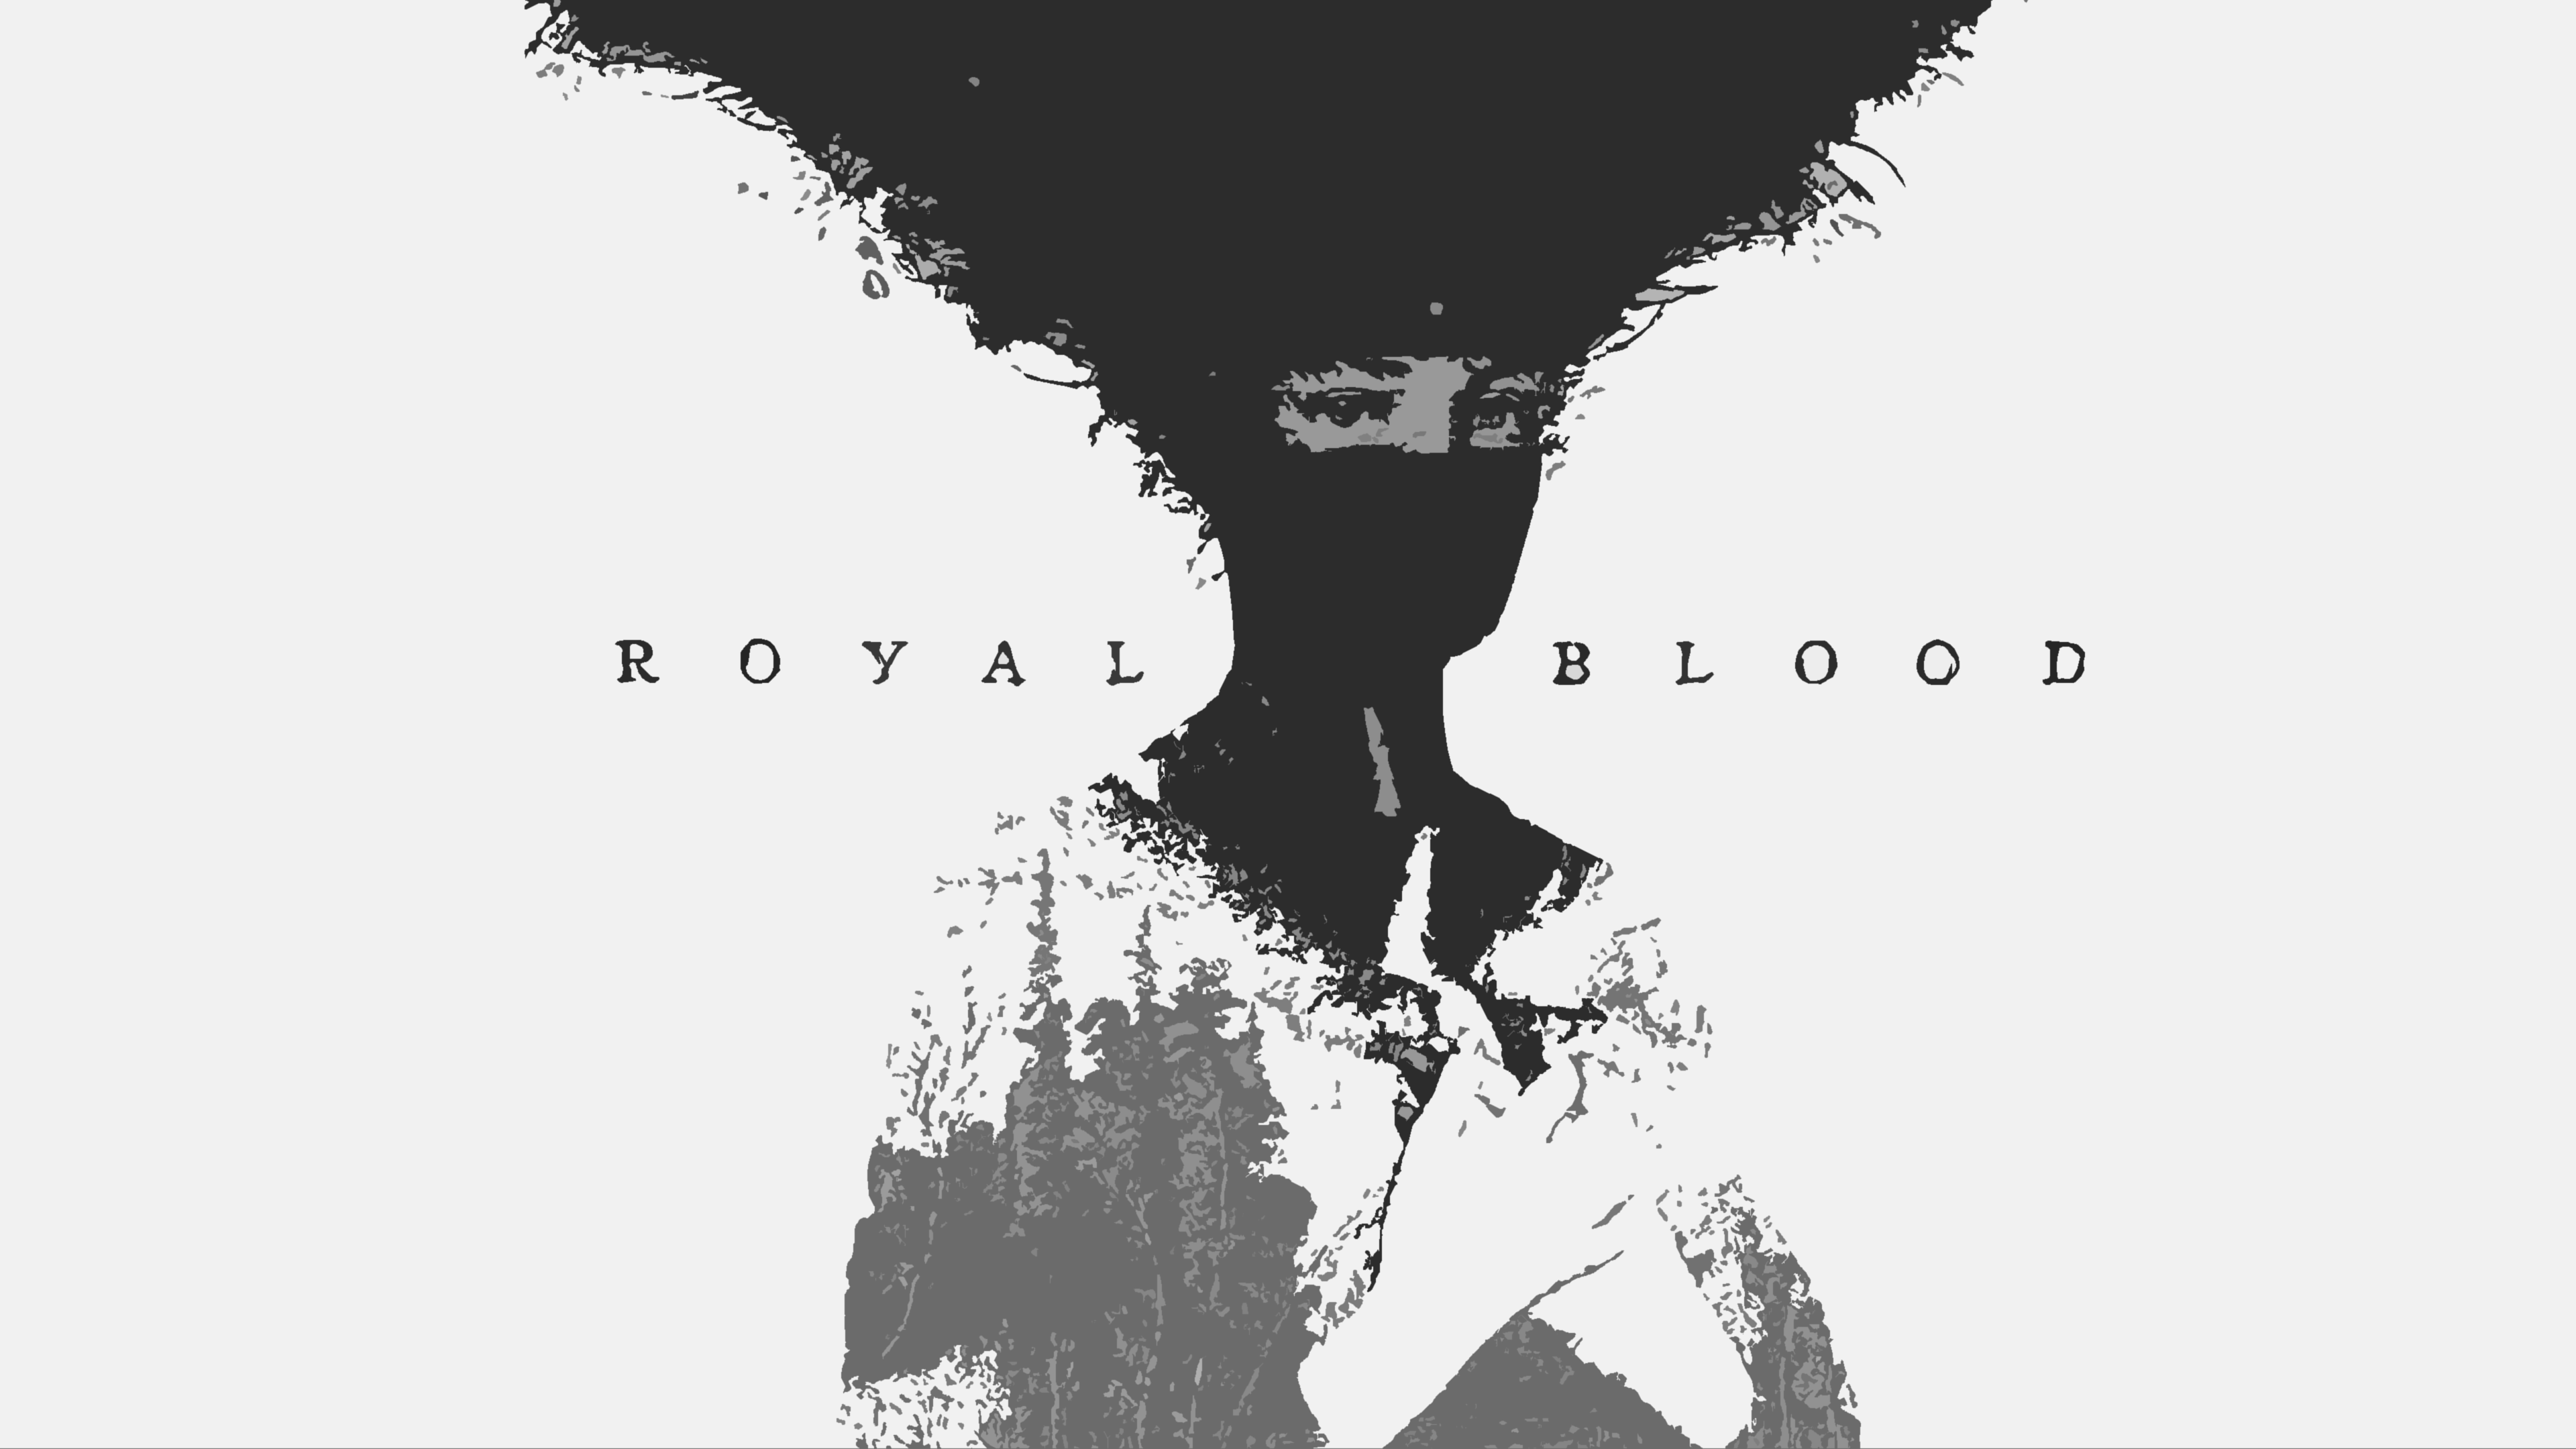 Royal Blood Wallpaper 4K by Tinajra on DeviantArt